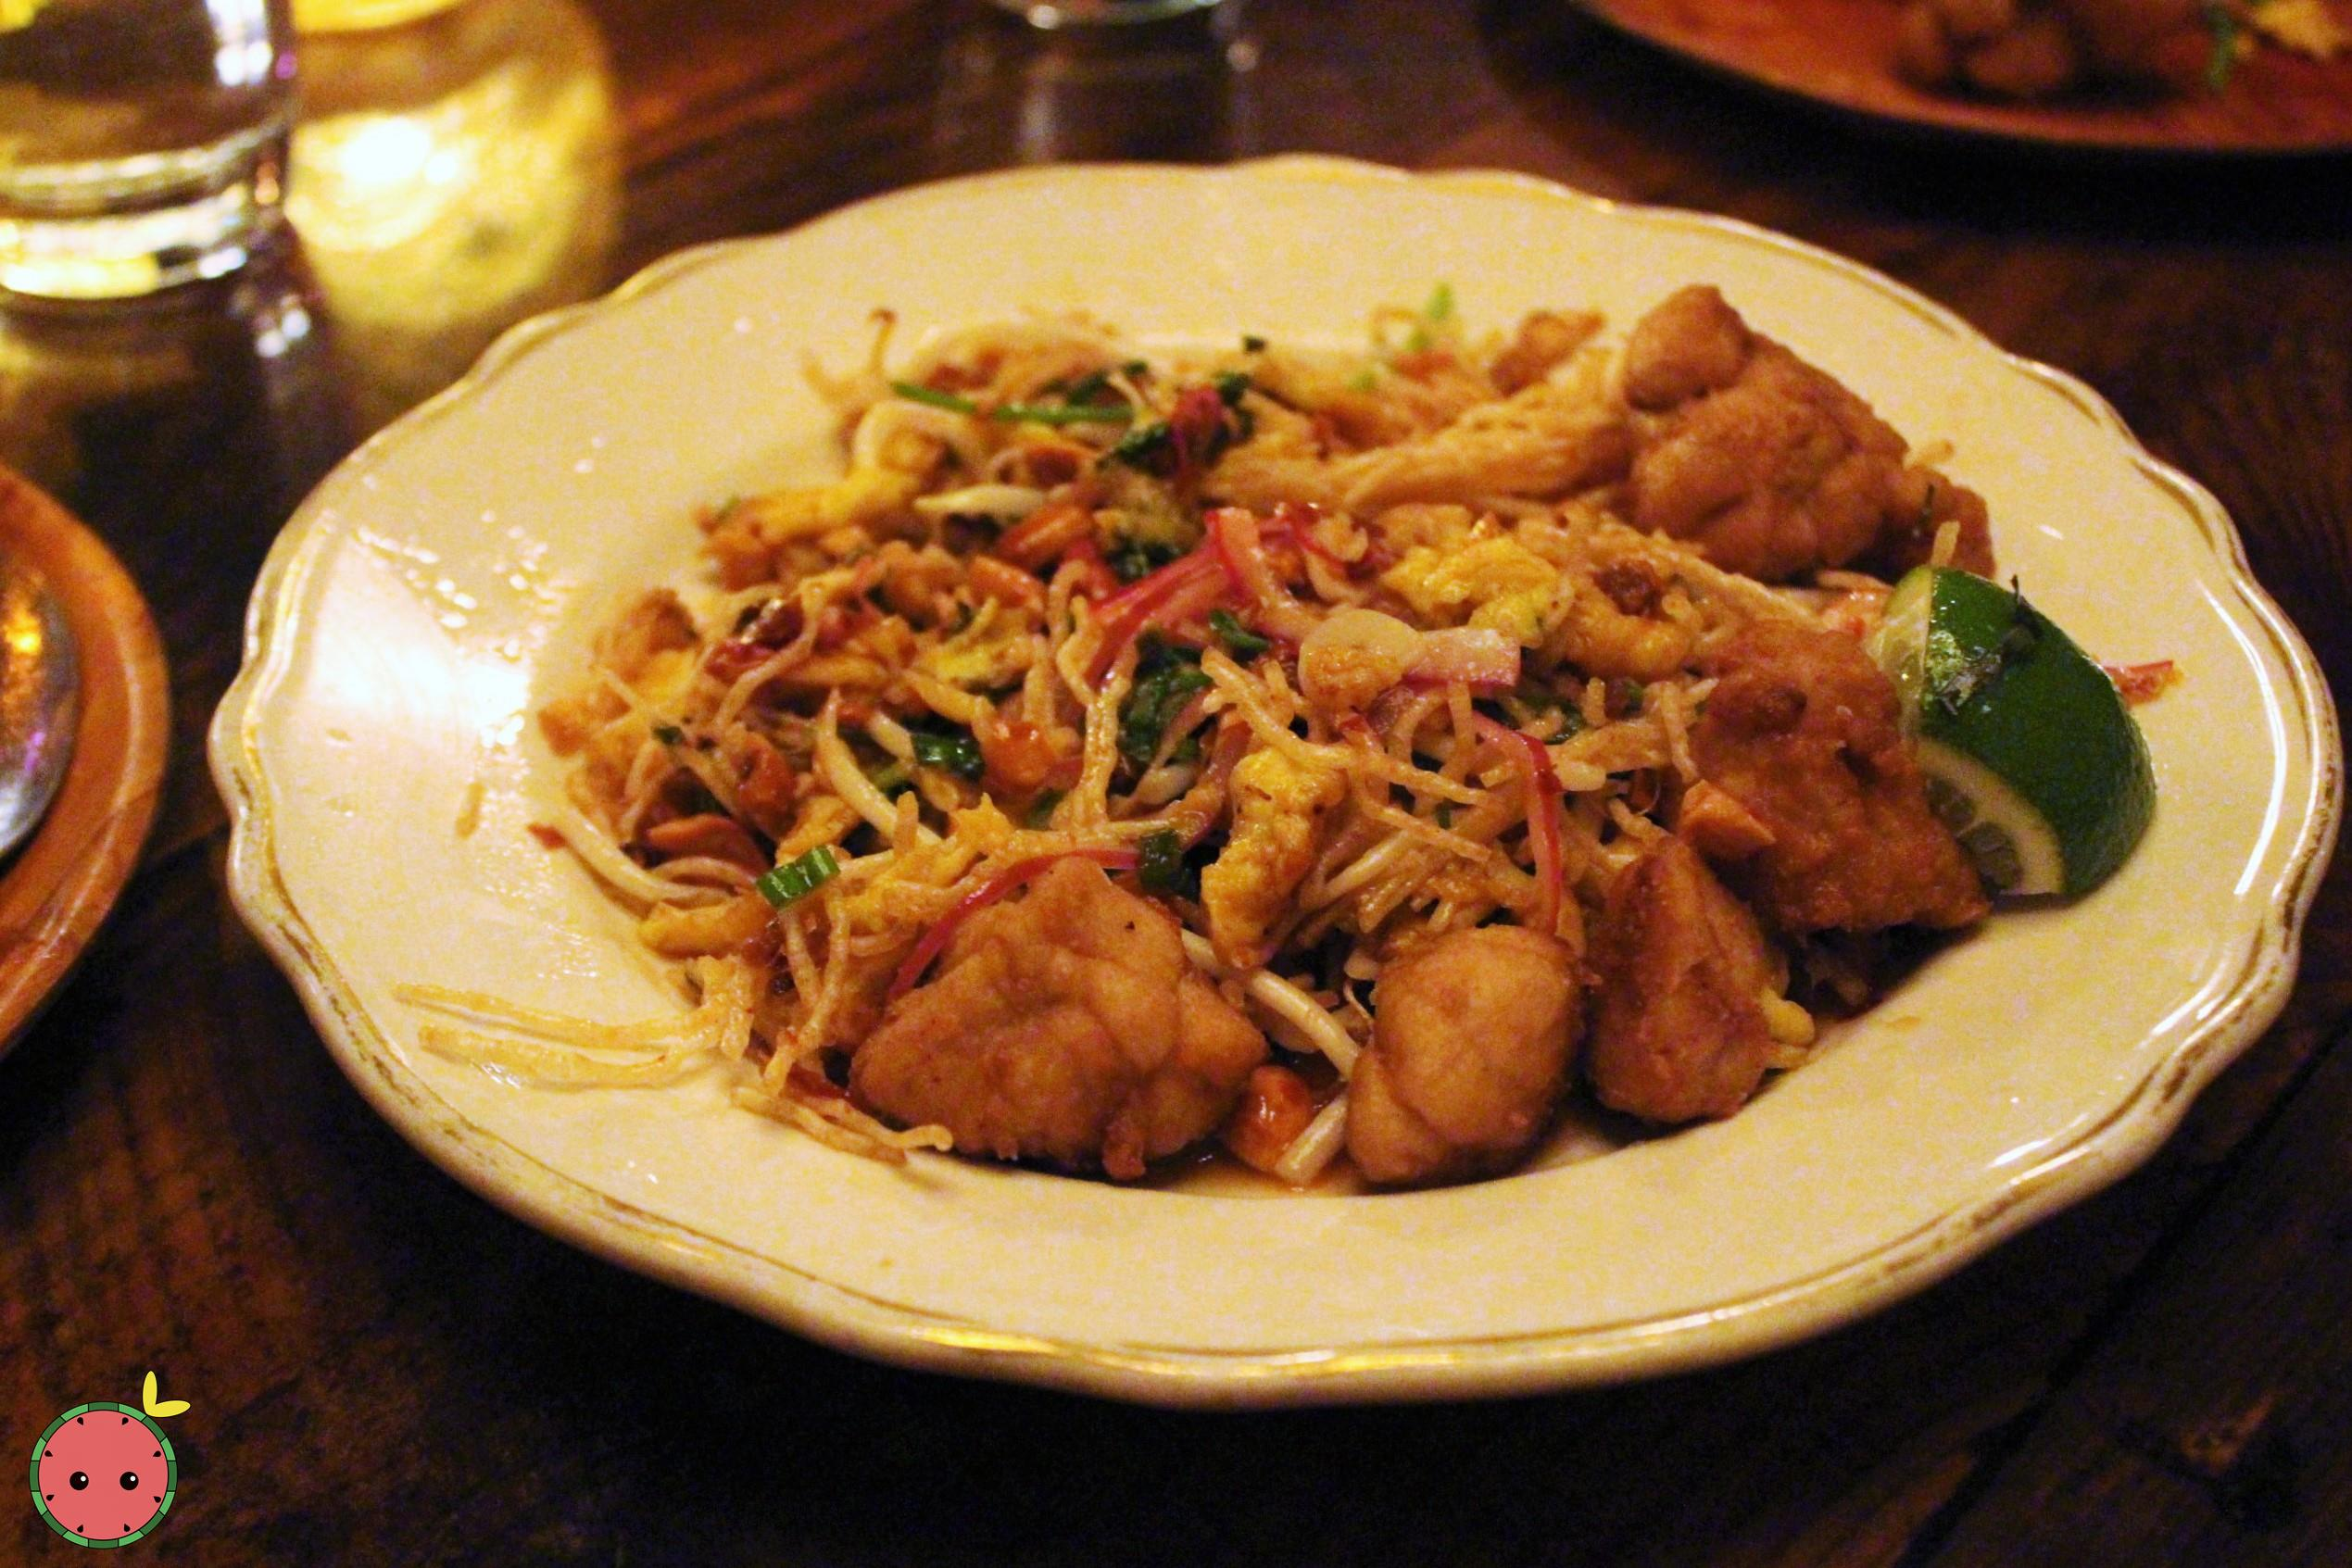 Mee Krob - Sweetbreads with crispy noodle salad, peanuts, dried shrimp, egg, sawtooth herb, and tama